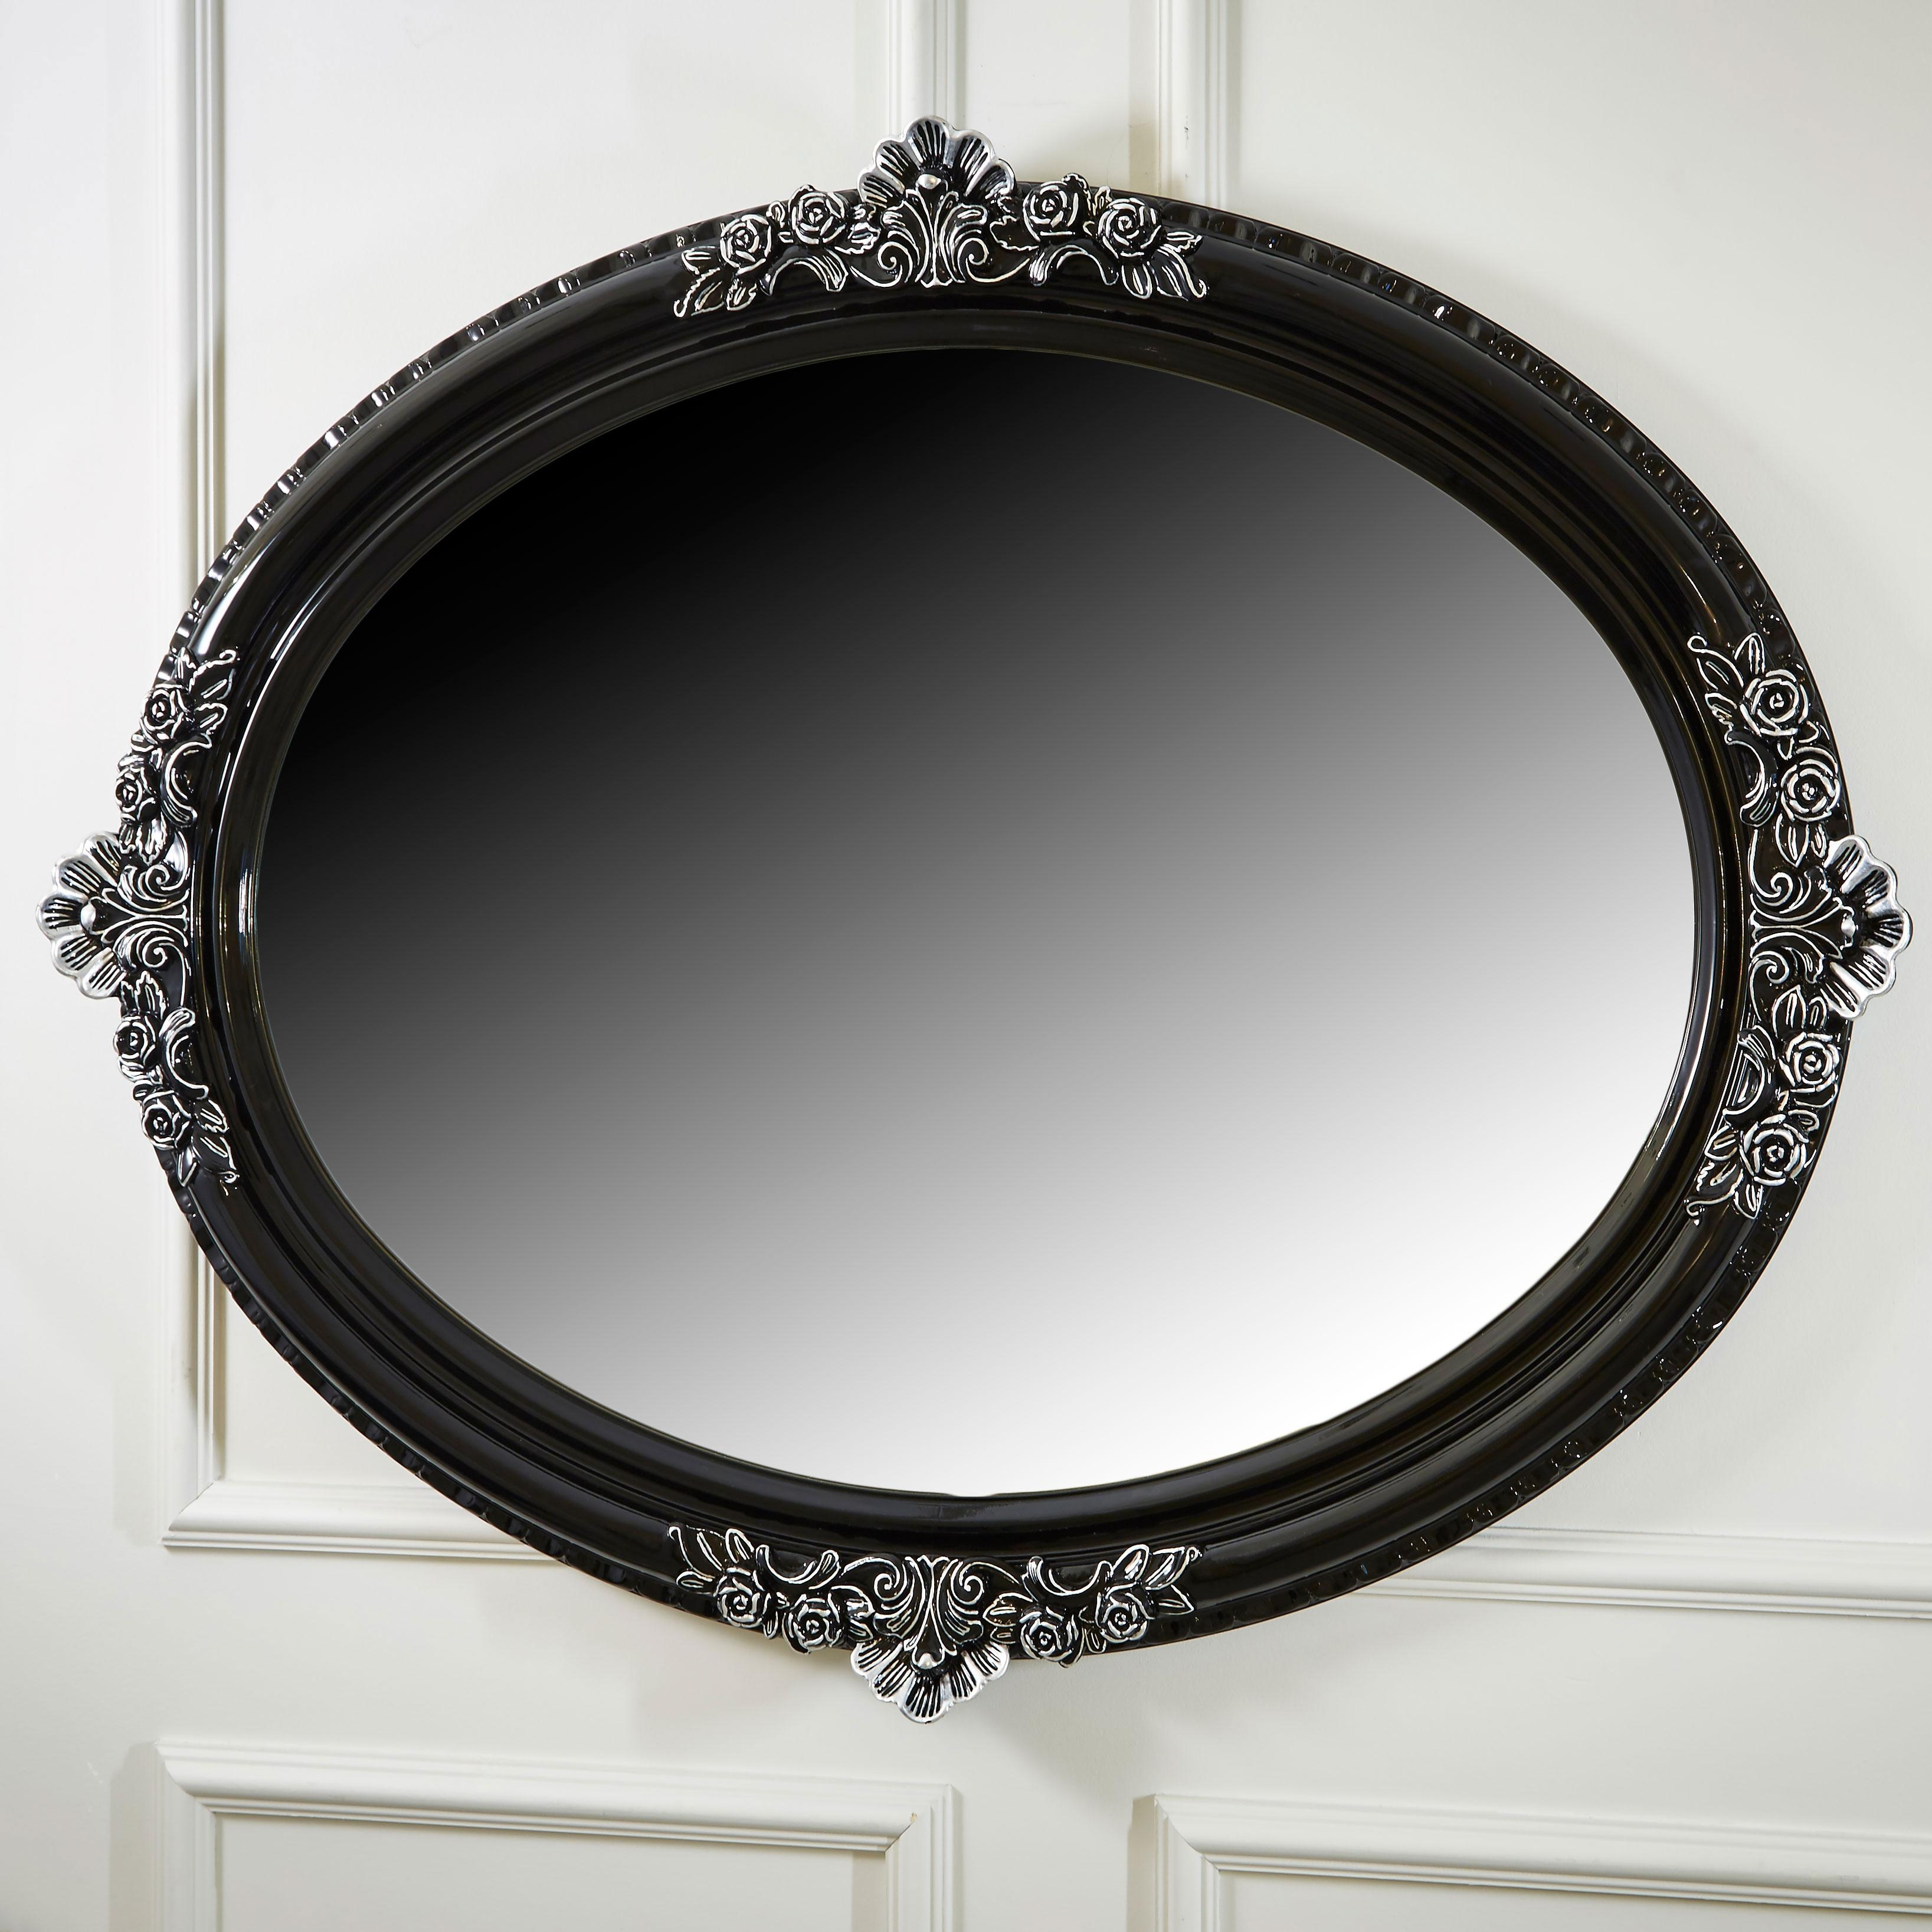 Ornate High Gloss Black Oval Mirror | Juliettes Interiors Throughout Ornate Oval Mirrors (Image 10 of 20)